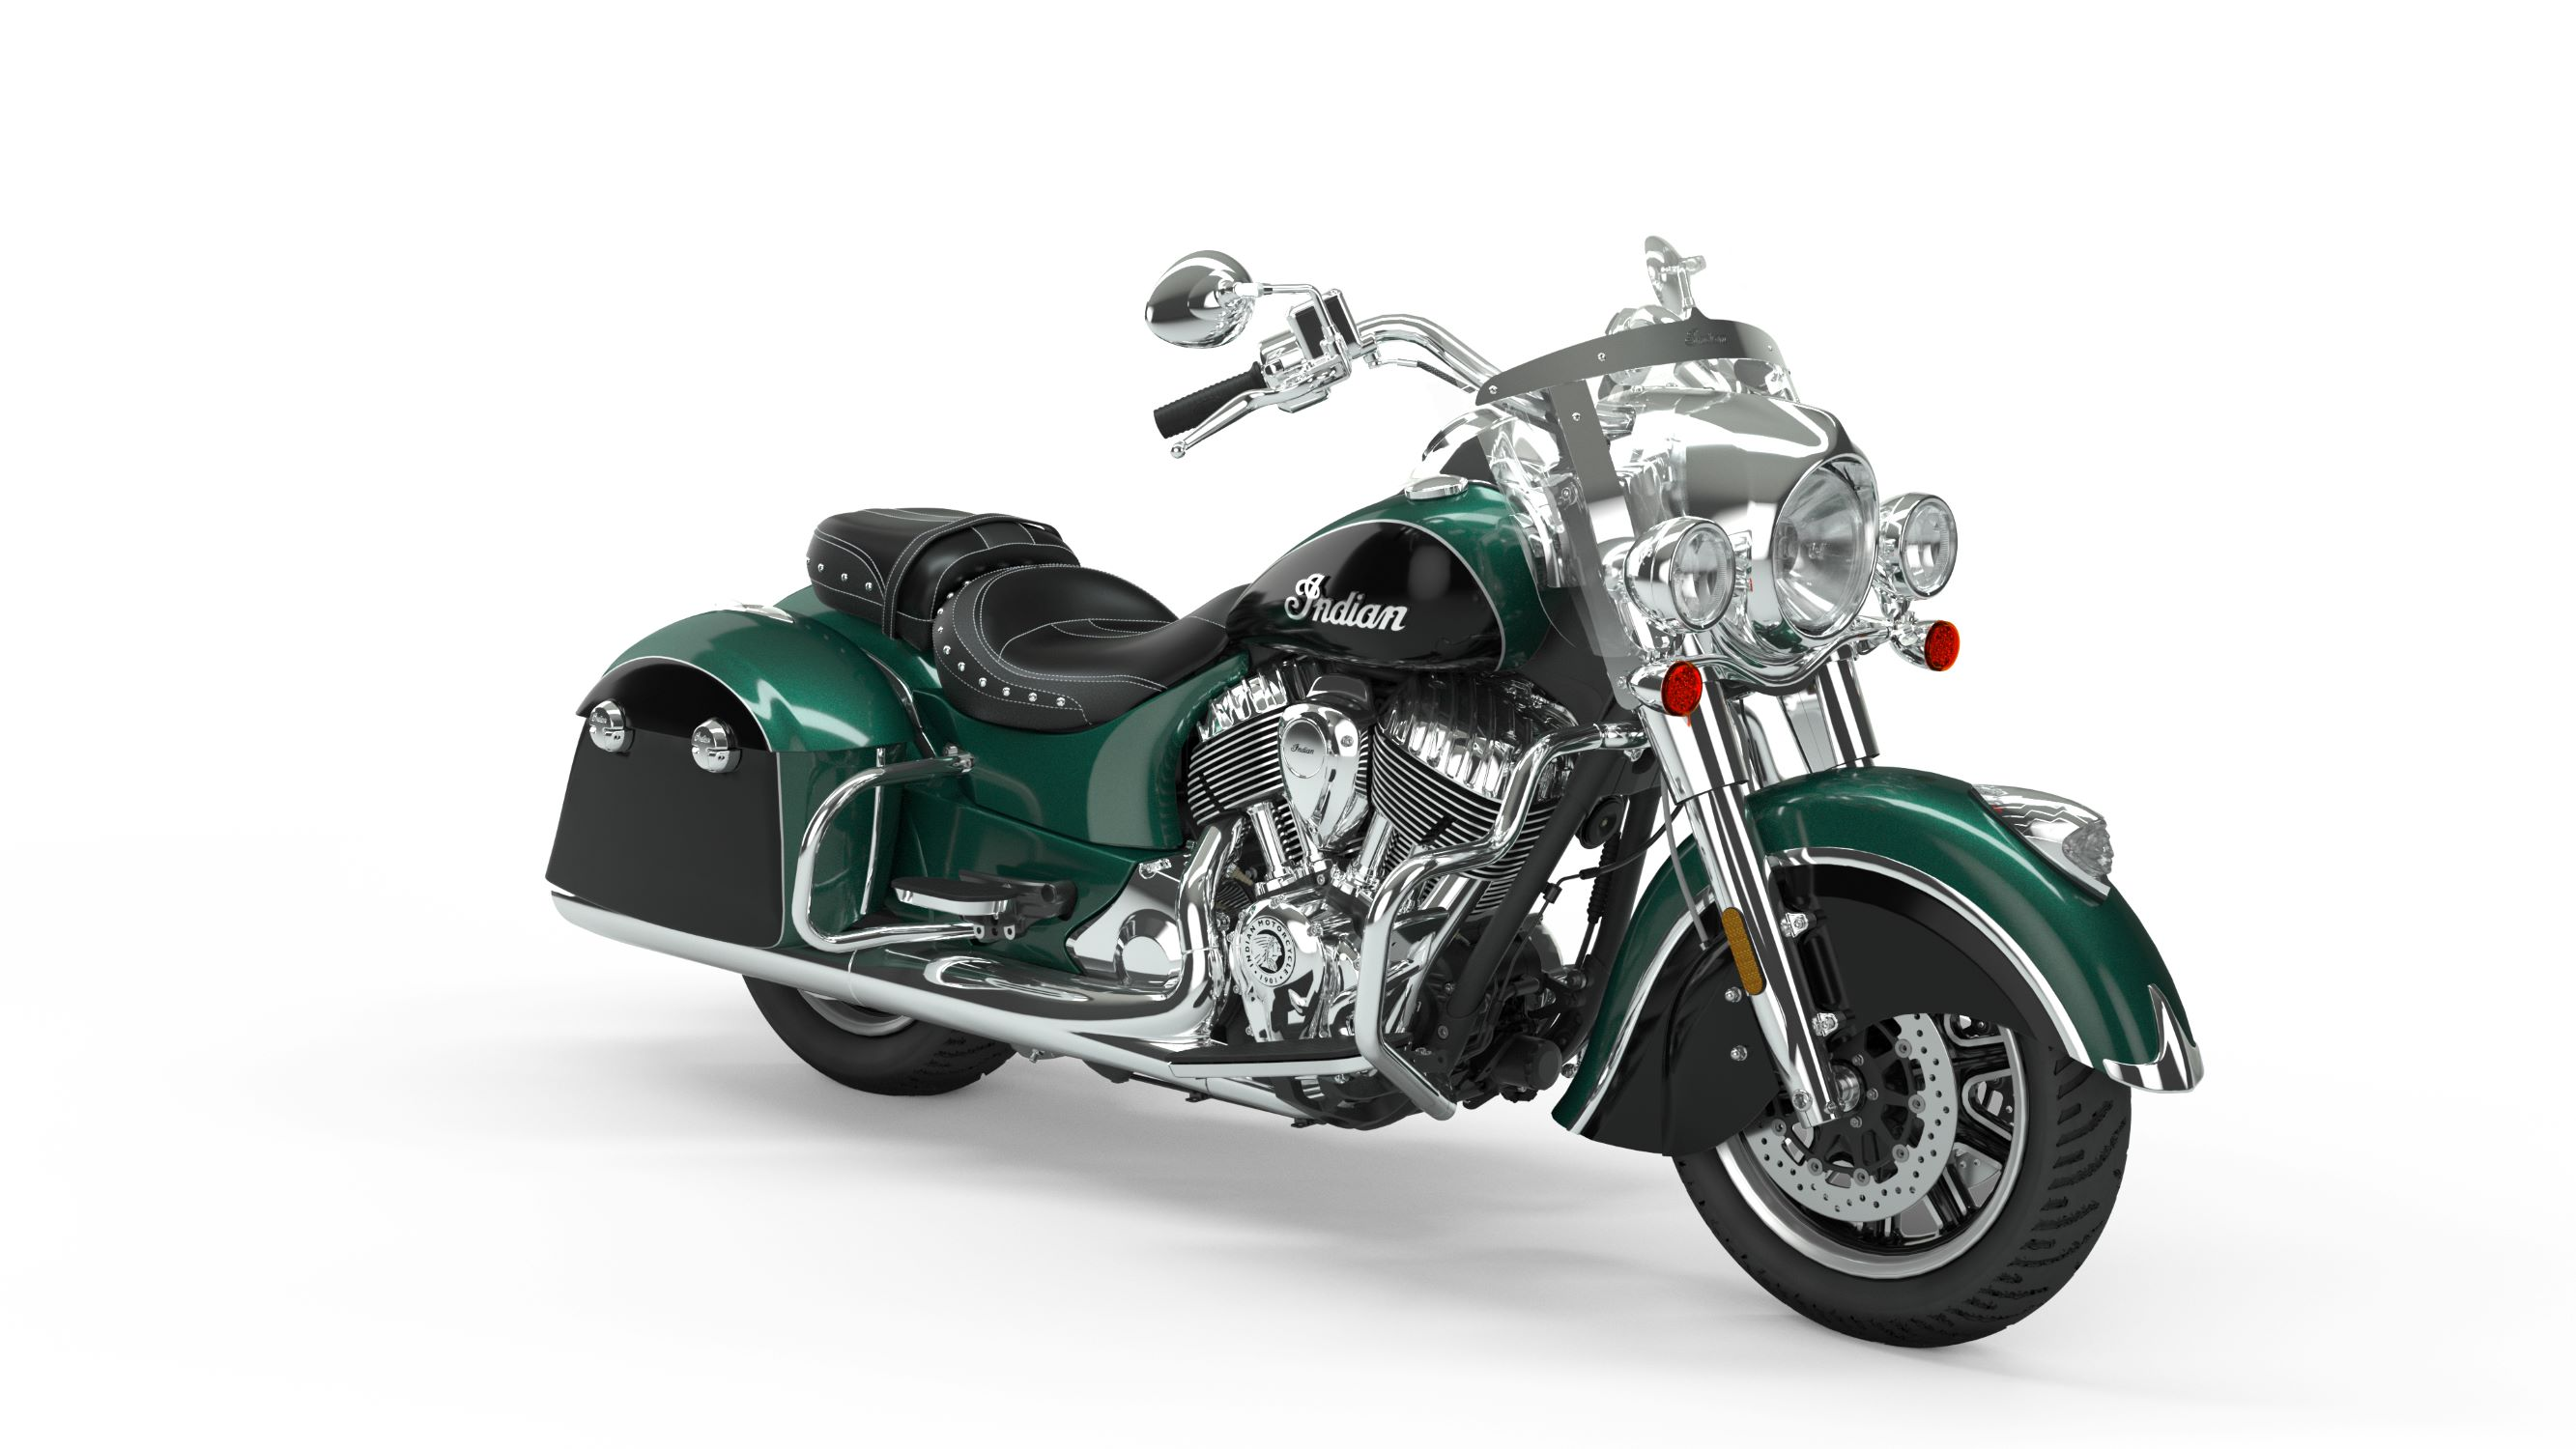 2019 Springfield Metallic Jade over Thunder Black Front Right 3Q